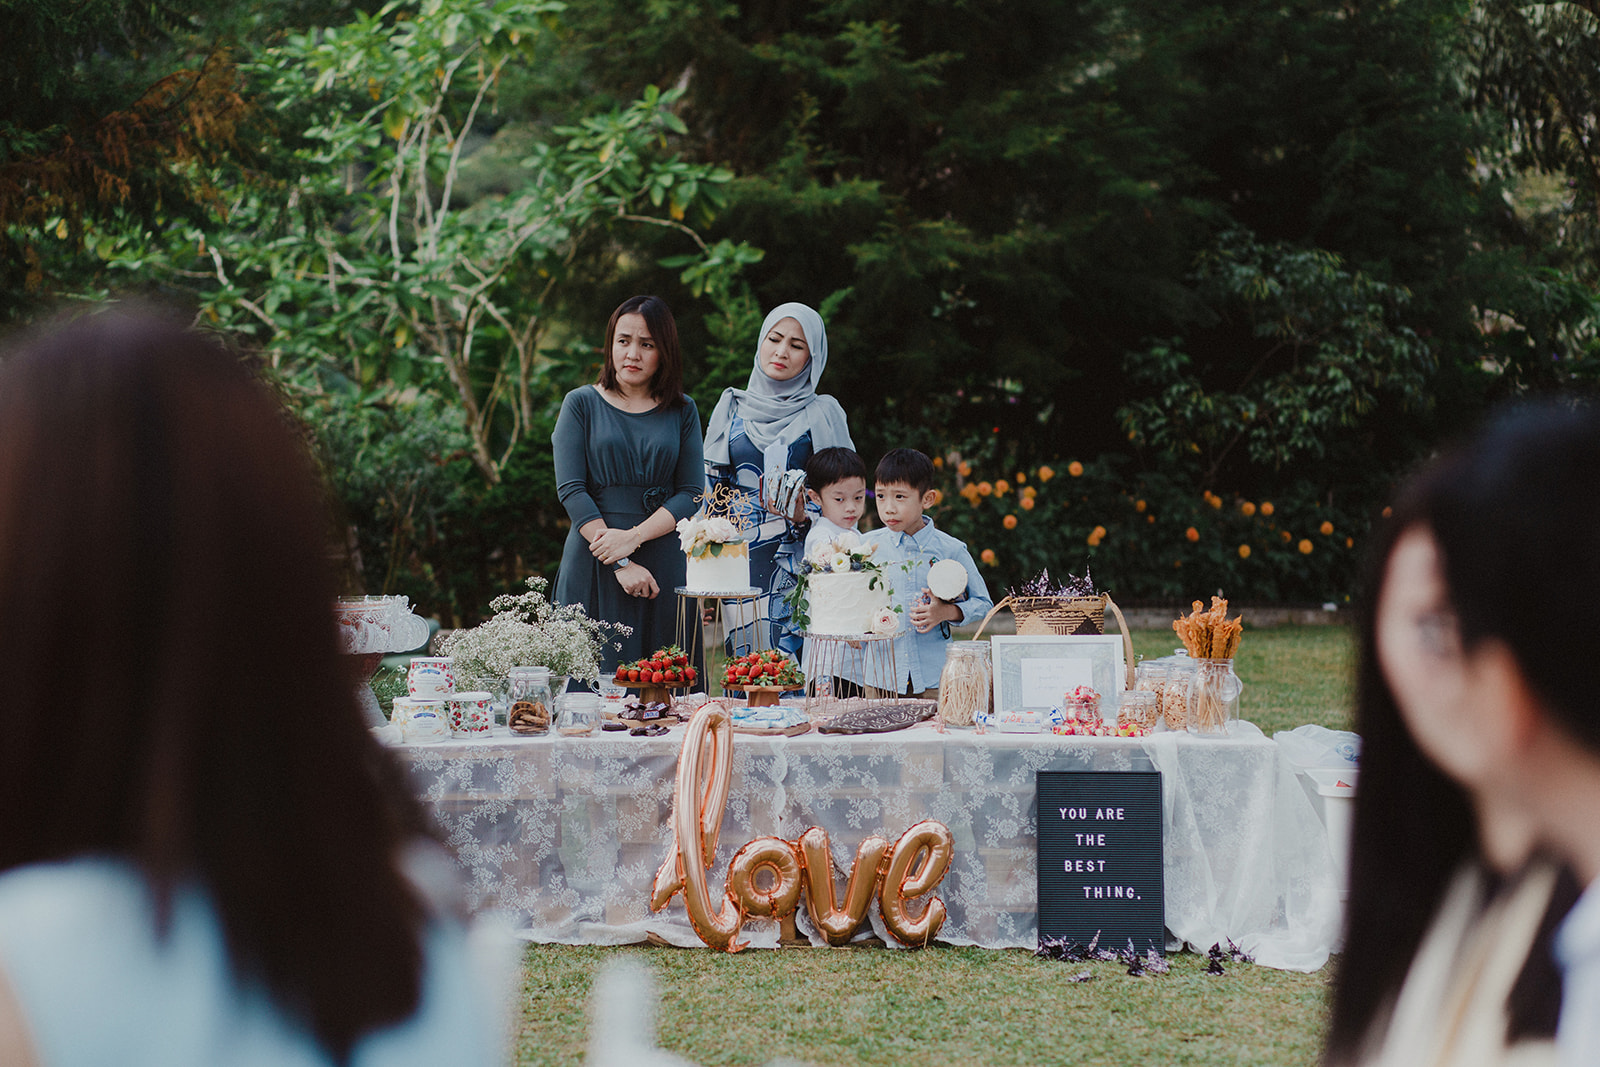 a casual dessert/snack table setup. topped with our favorite childhood snacks, local fresh strawberries, etc. it was a hit with our guests :)